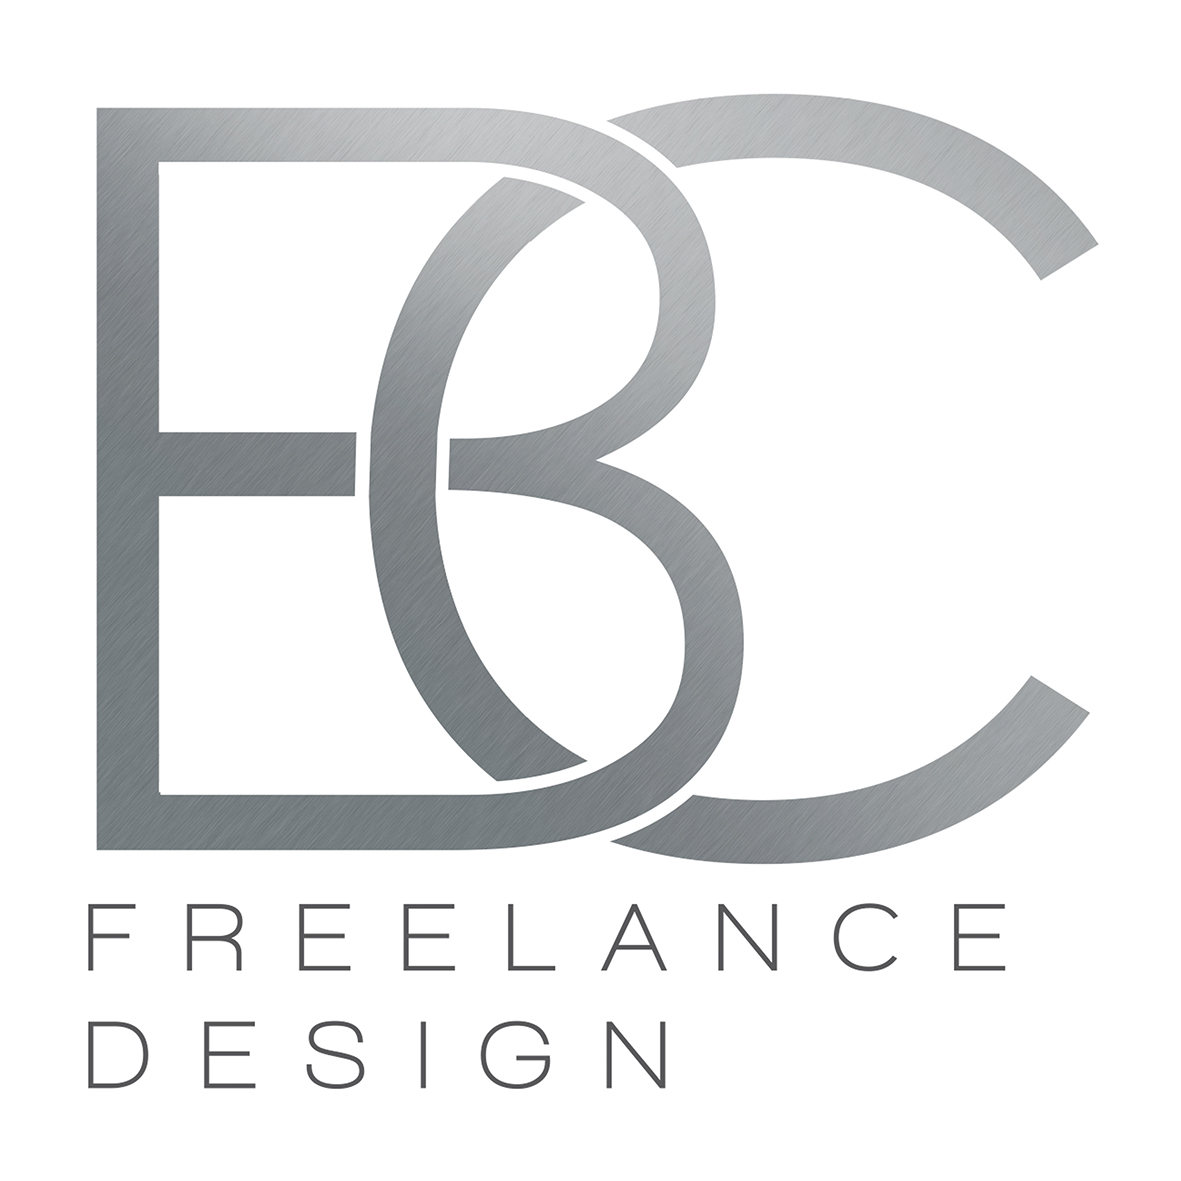 BC freelance design - Grafton Accommodation